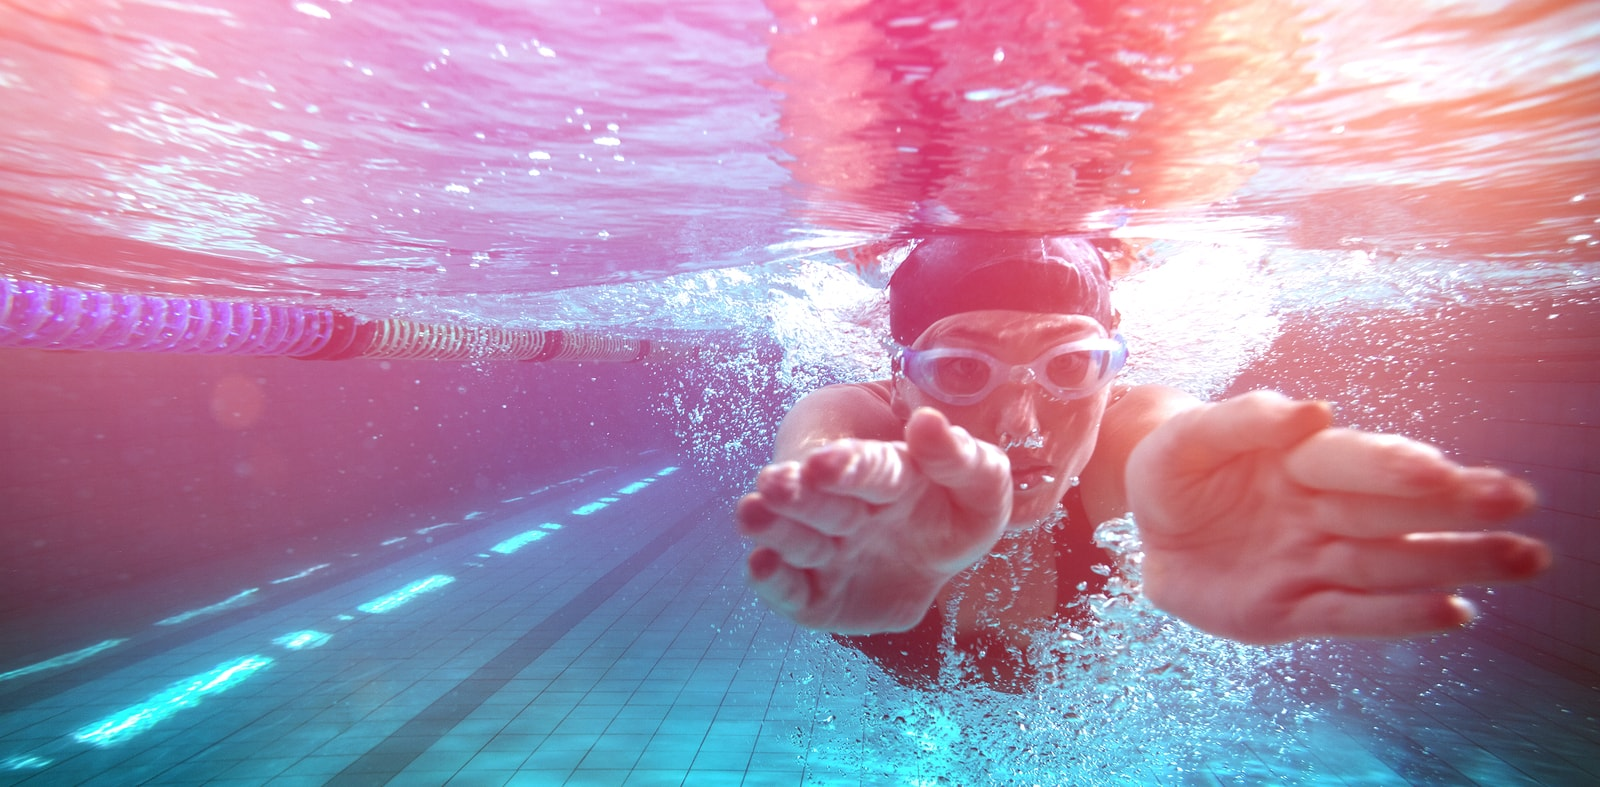 bigstock-Athletic-swimmer-training-on-h-134401106-min